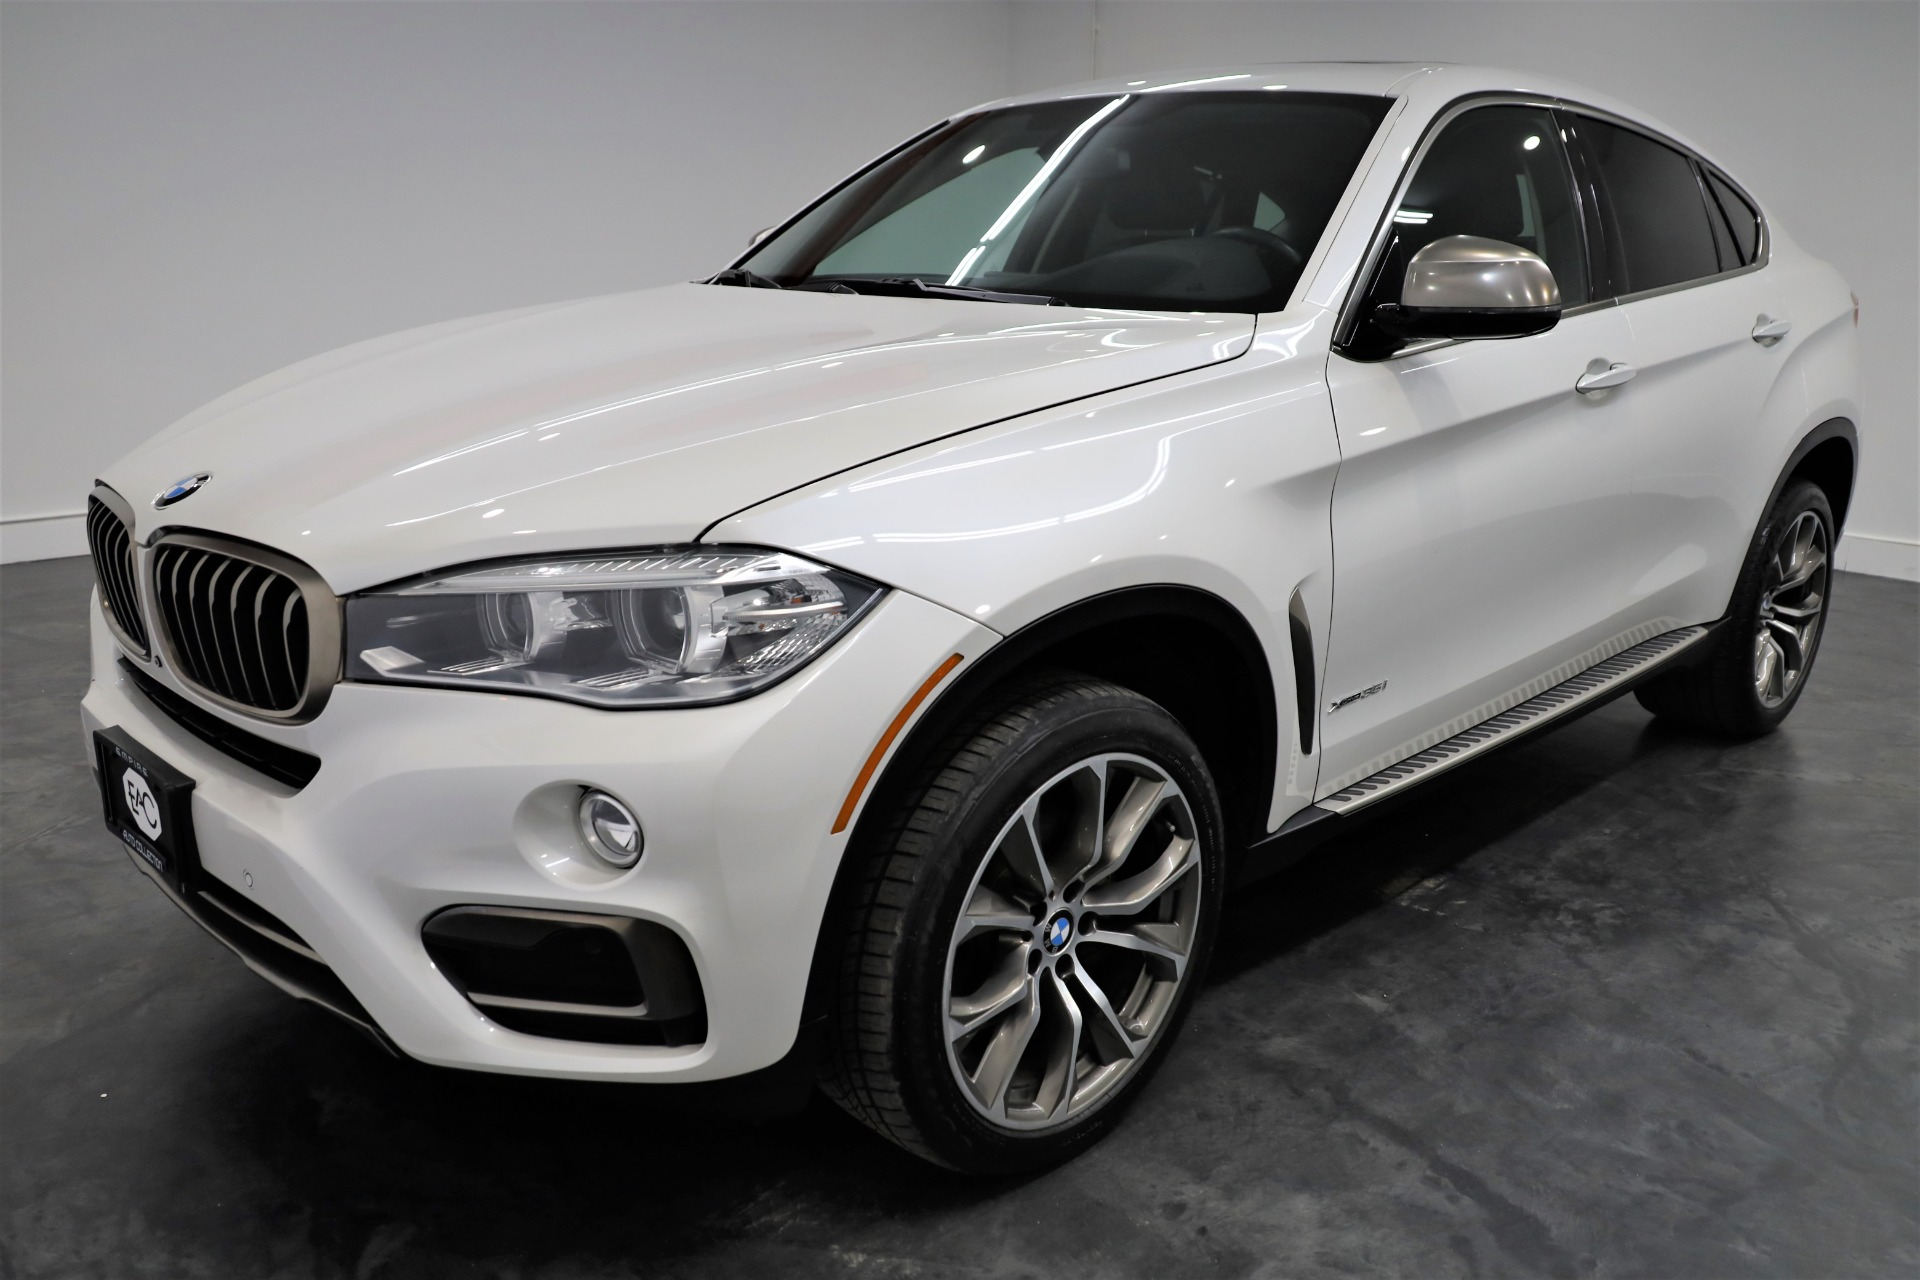 Used 2015 BMW X6 xDrive35i for sale Sold at Empire Auto Collection in Warren MI 48091 1